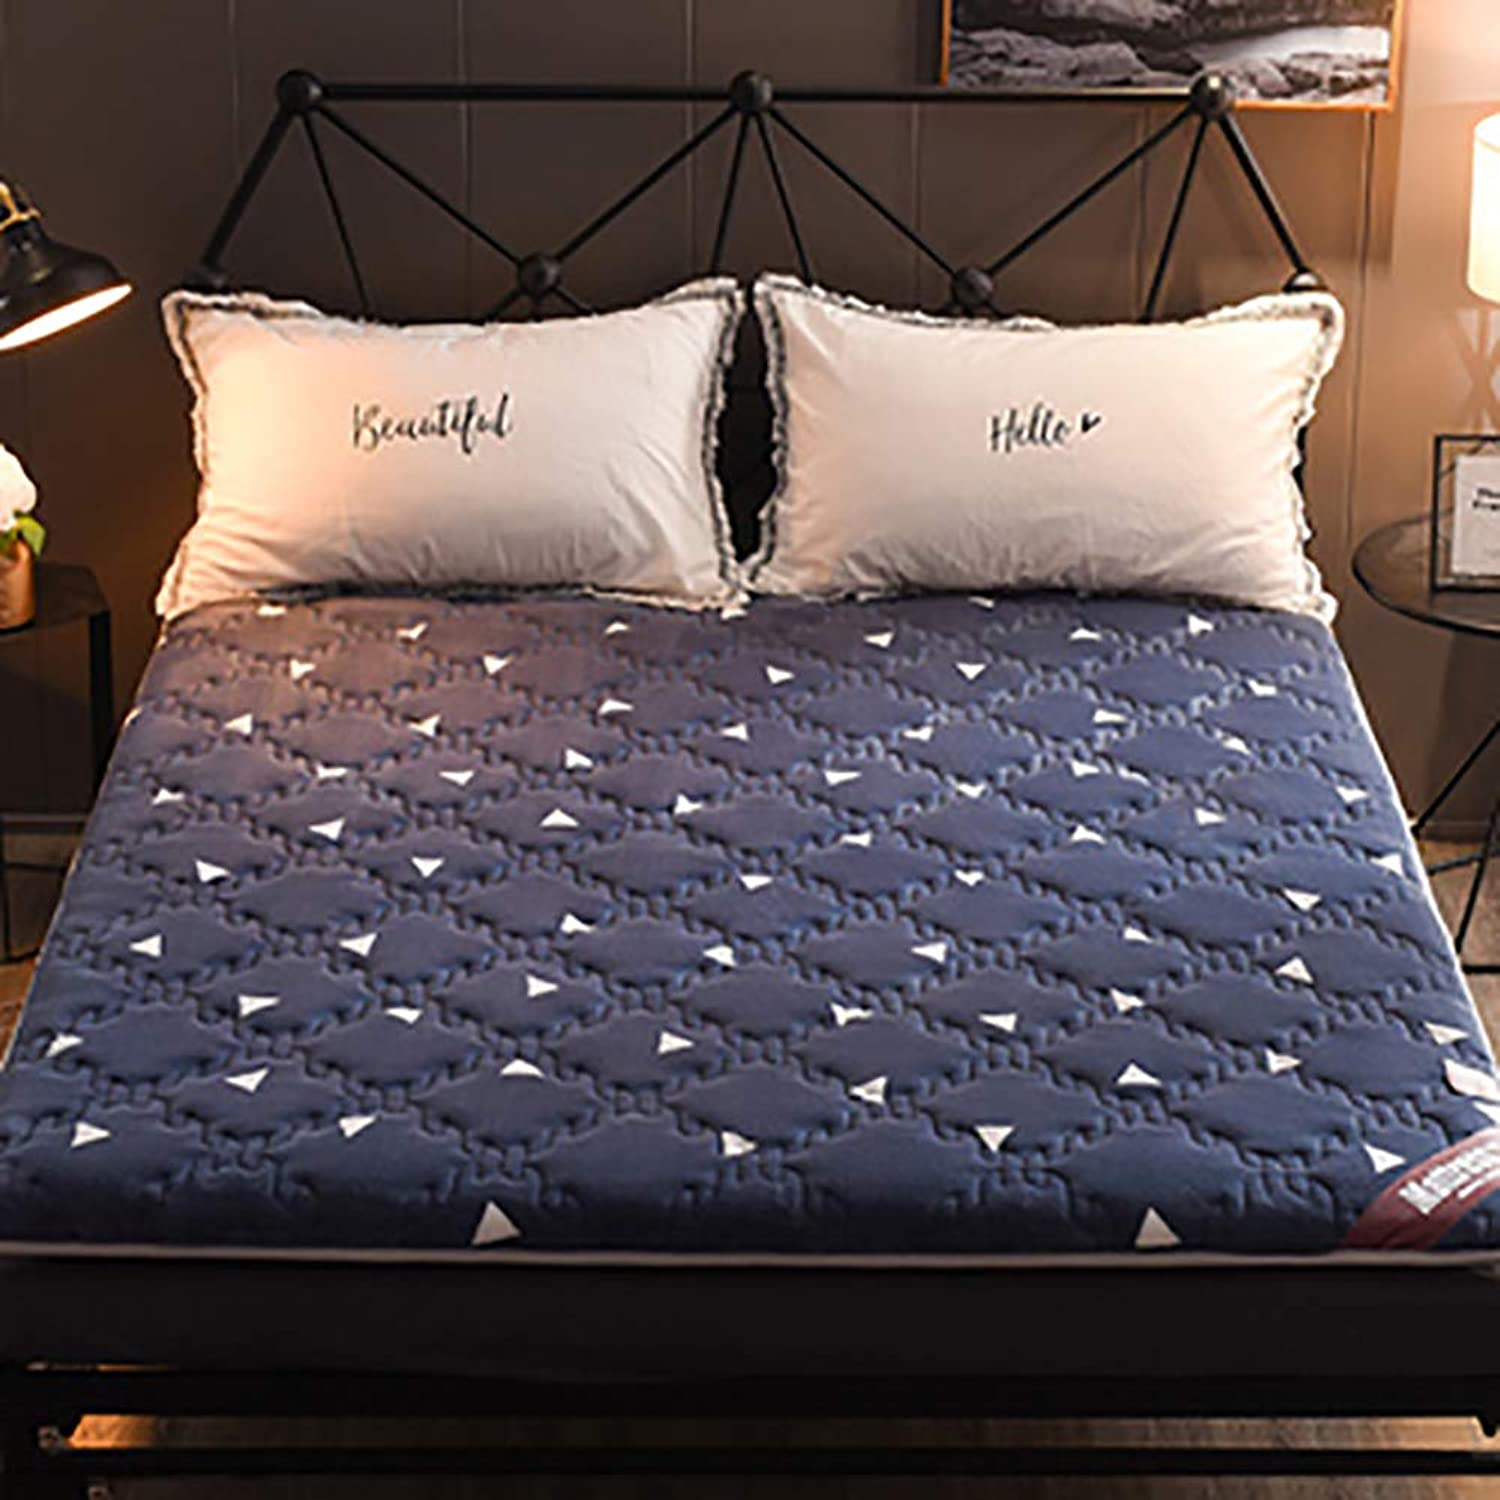 Memory Foam Mattress, Quilted Warm Flannel Bed roll Comfort Luxury Thick Non-Slip Sleeping pad-bluee 90x190x6cm